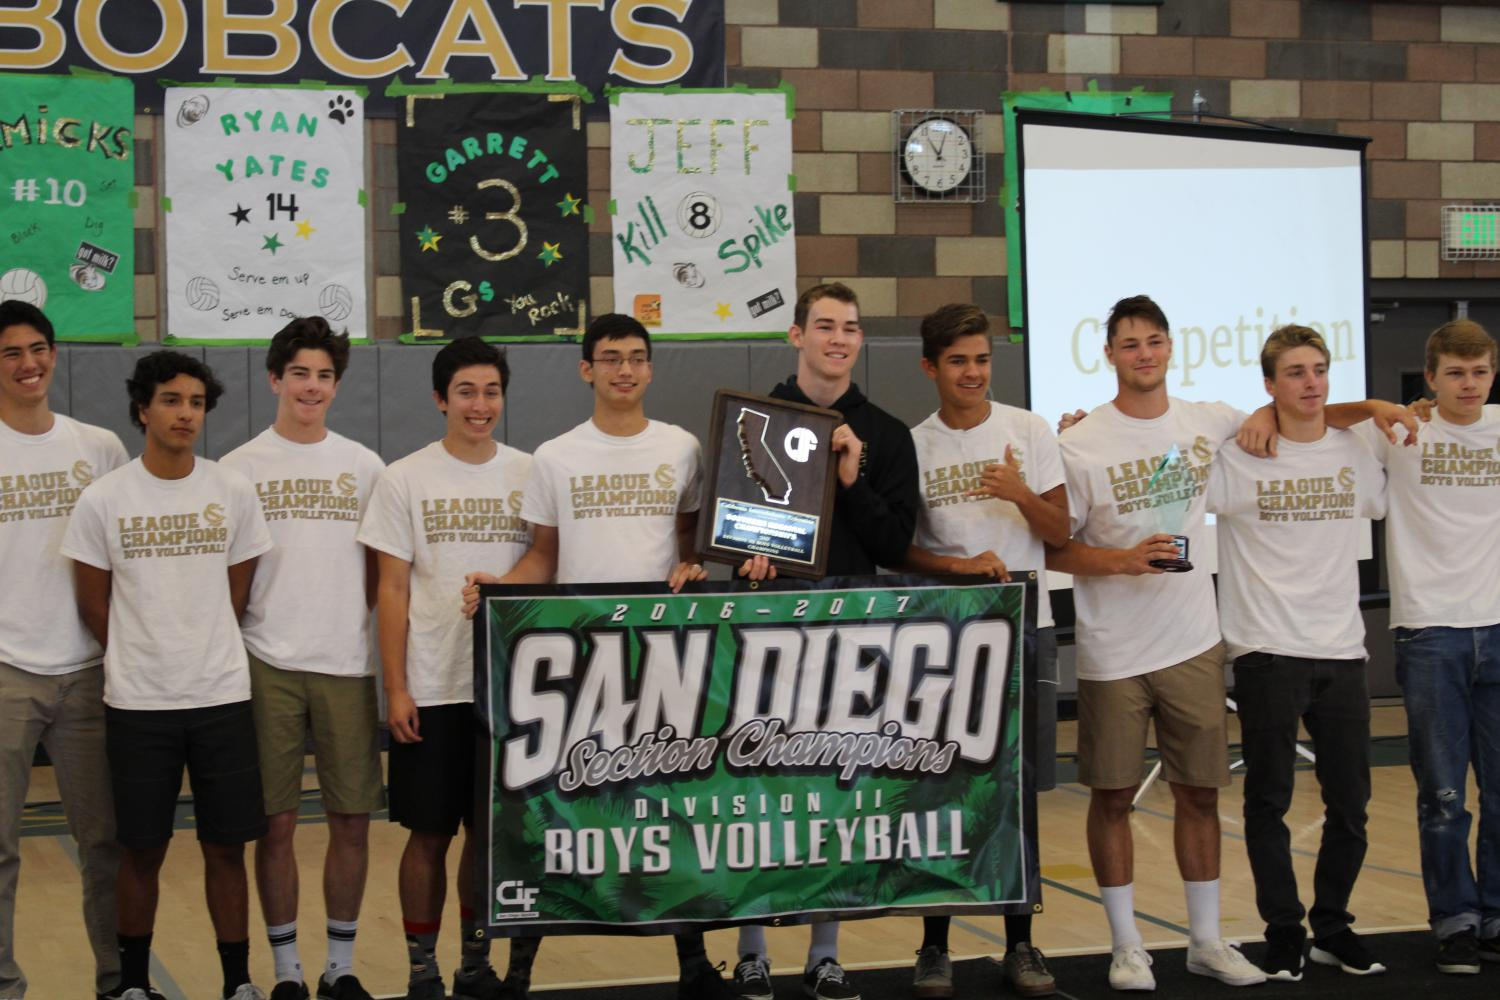 Boys Varsity Volleyball team stands united with their State Championship banner.